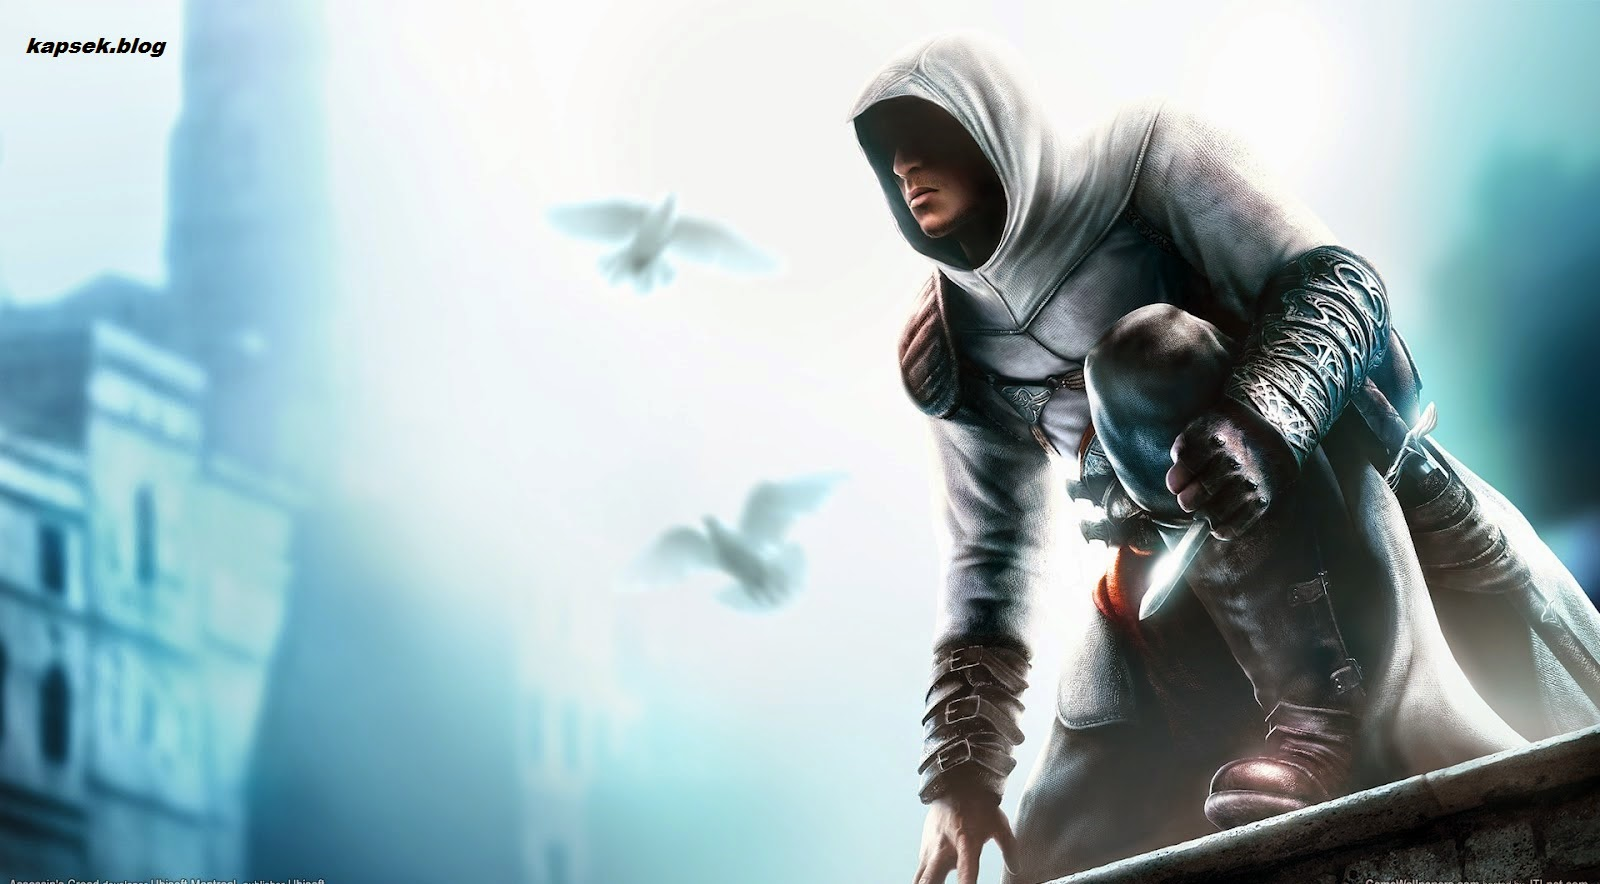 Assassin's Creed 2015 new upcoming movie HD wallpaper 3